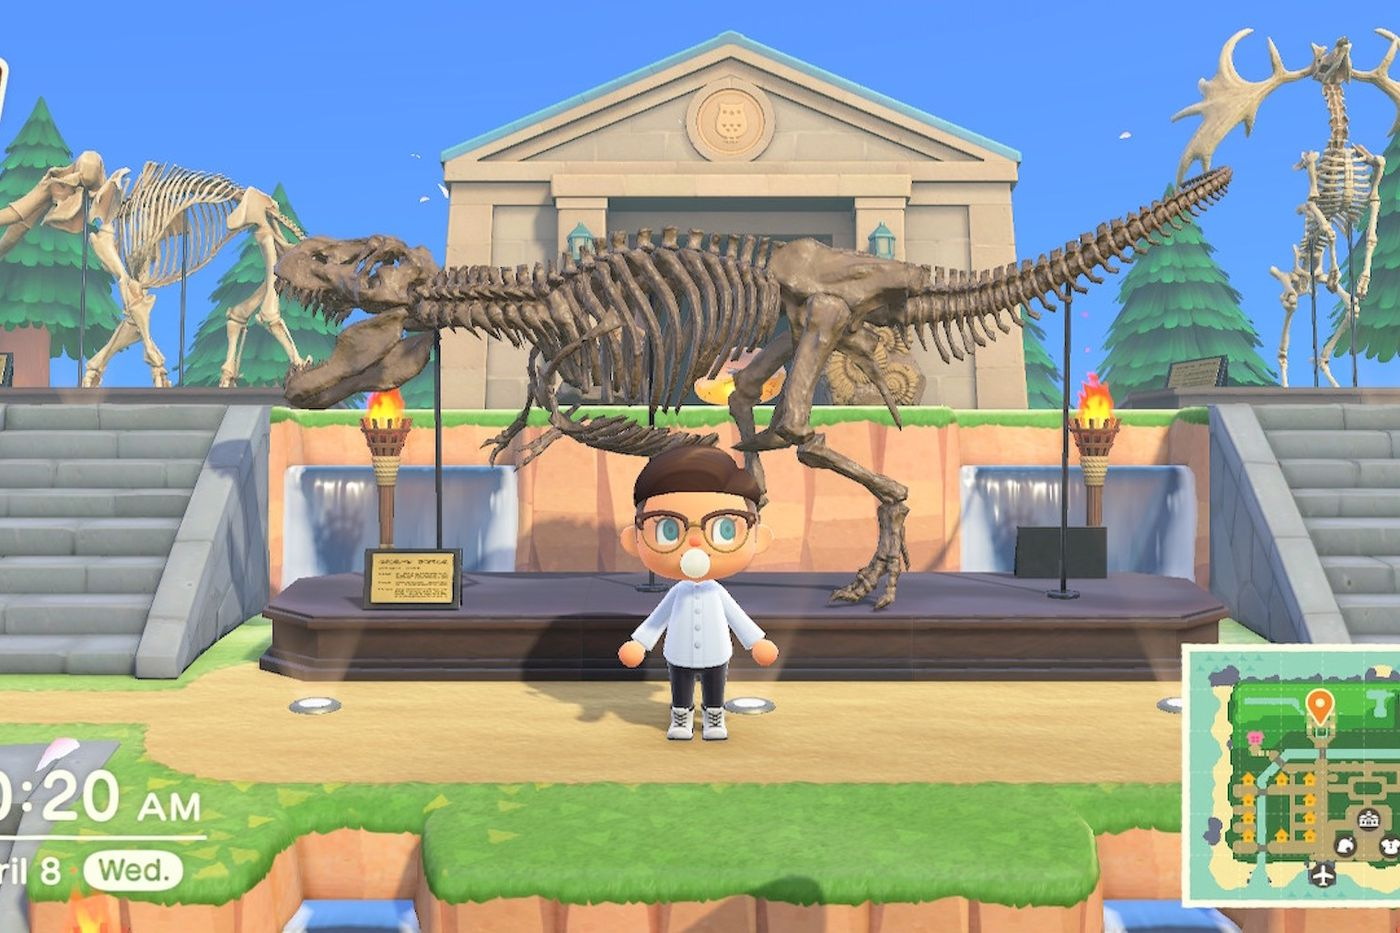 Animal Crossing New Horizons Mentions Brewster Missing Features Polygon